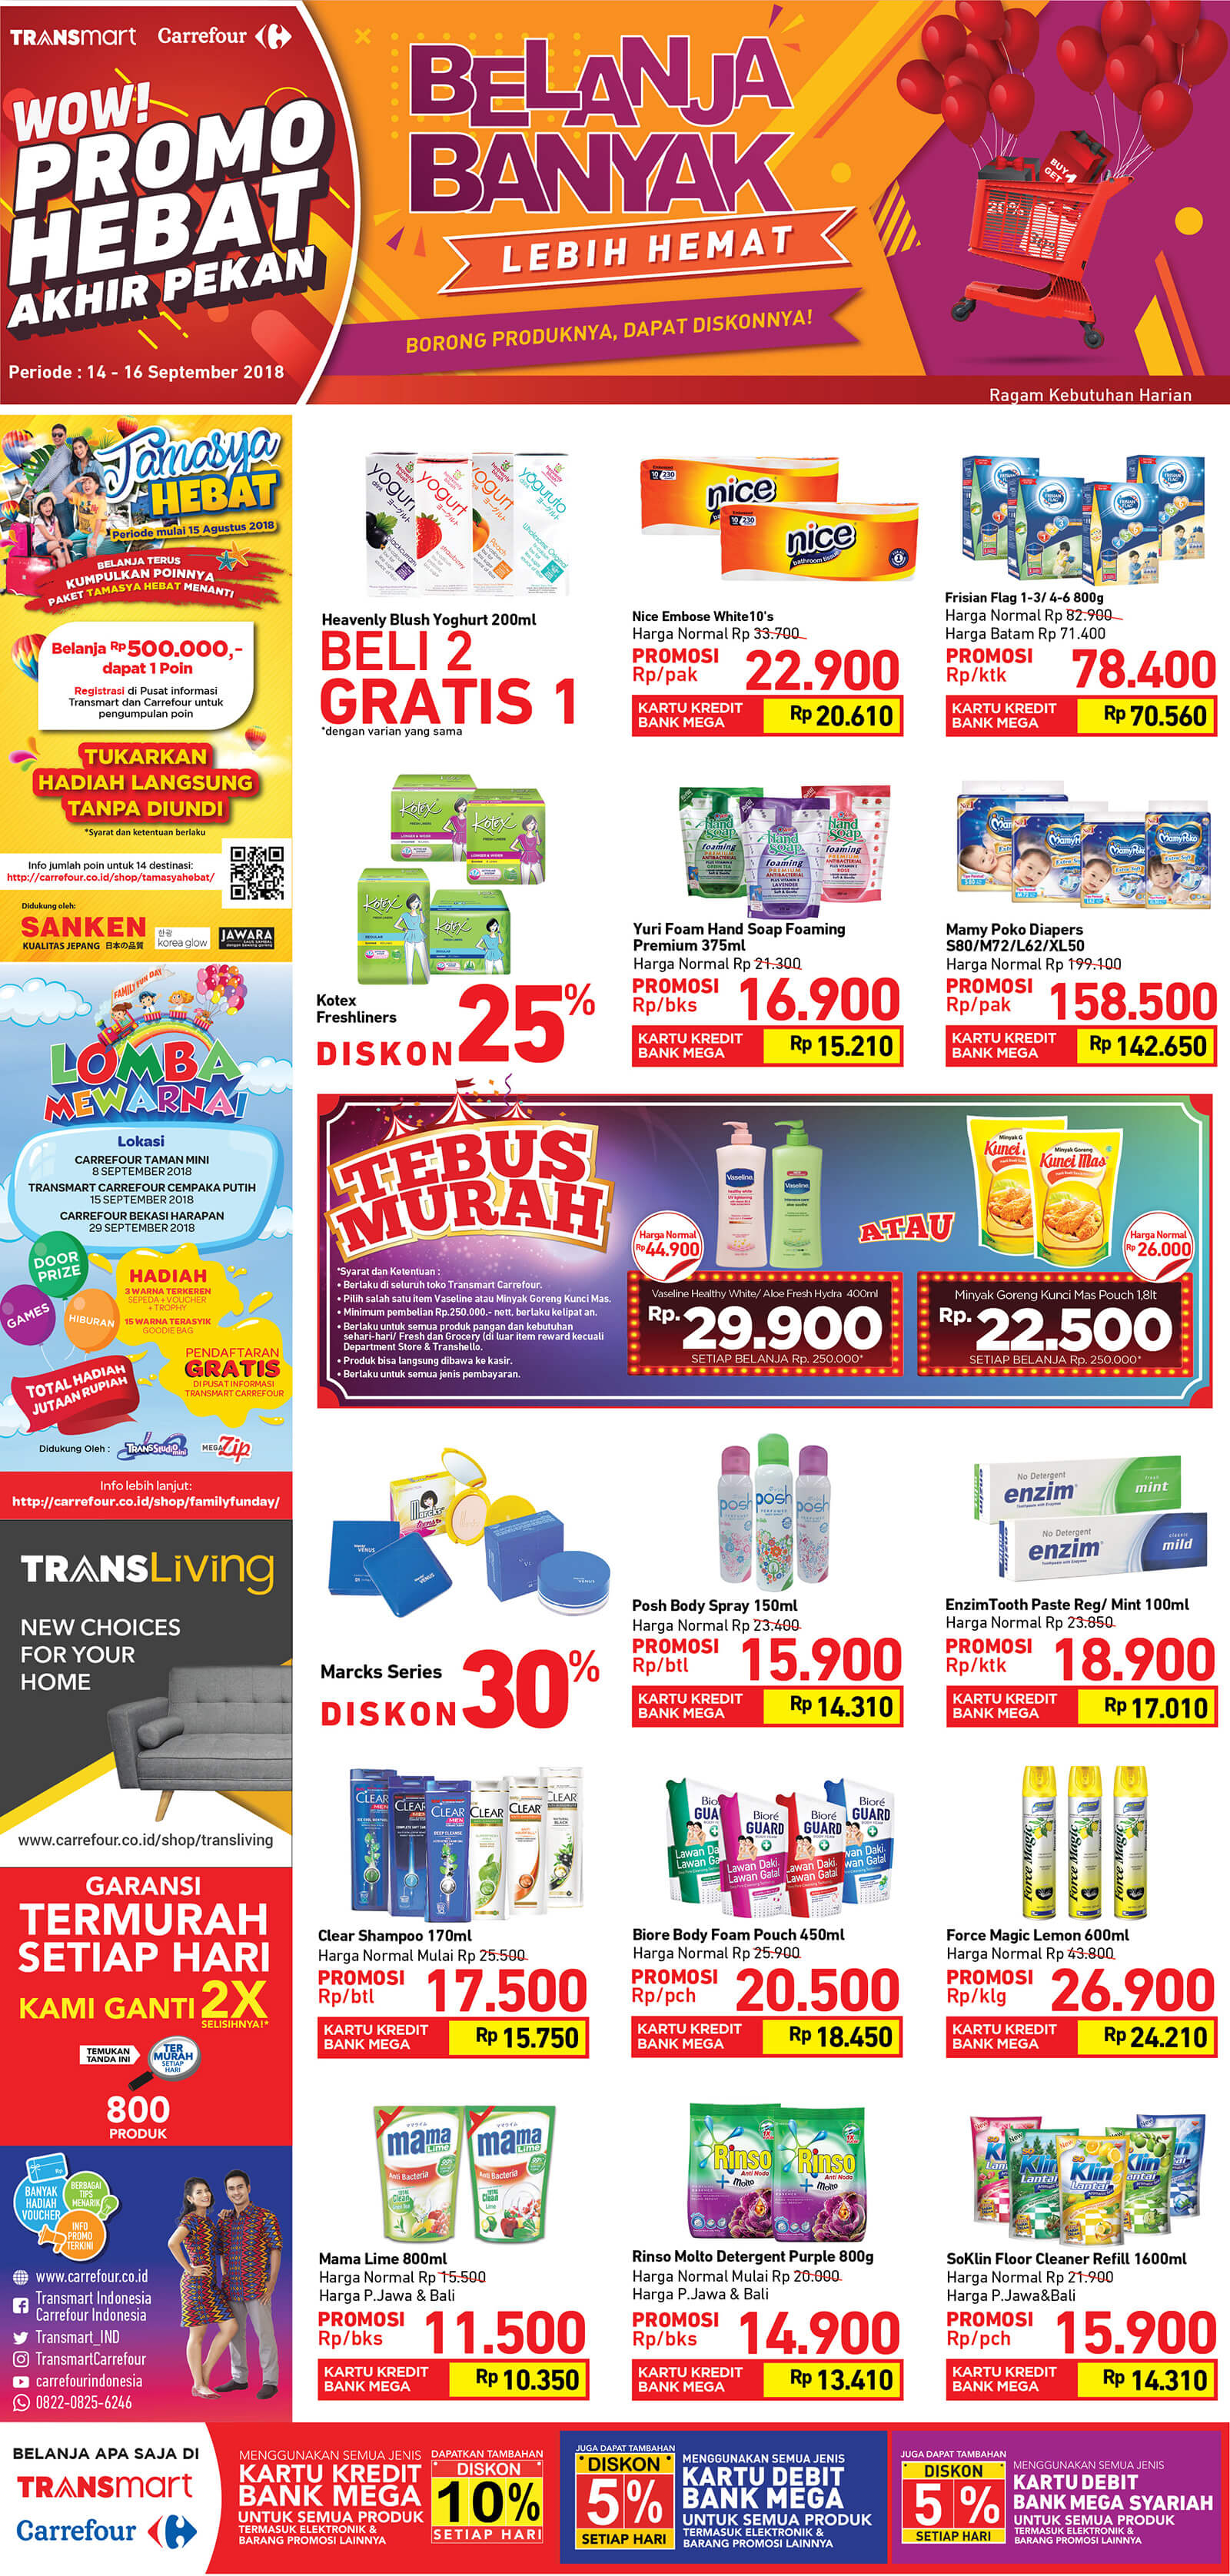 Katalog Carrefour 14 Sep 16 Voucher Carefur